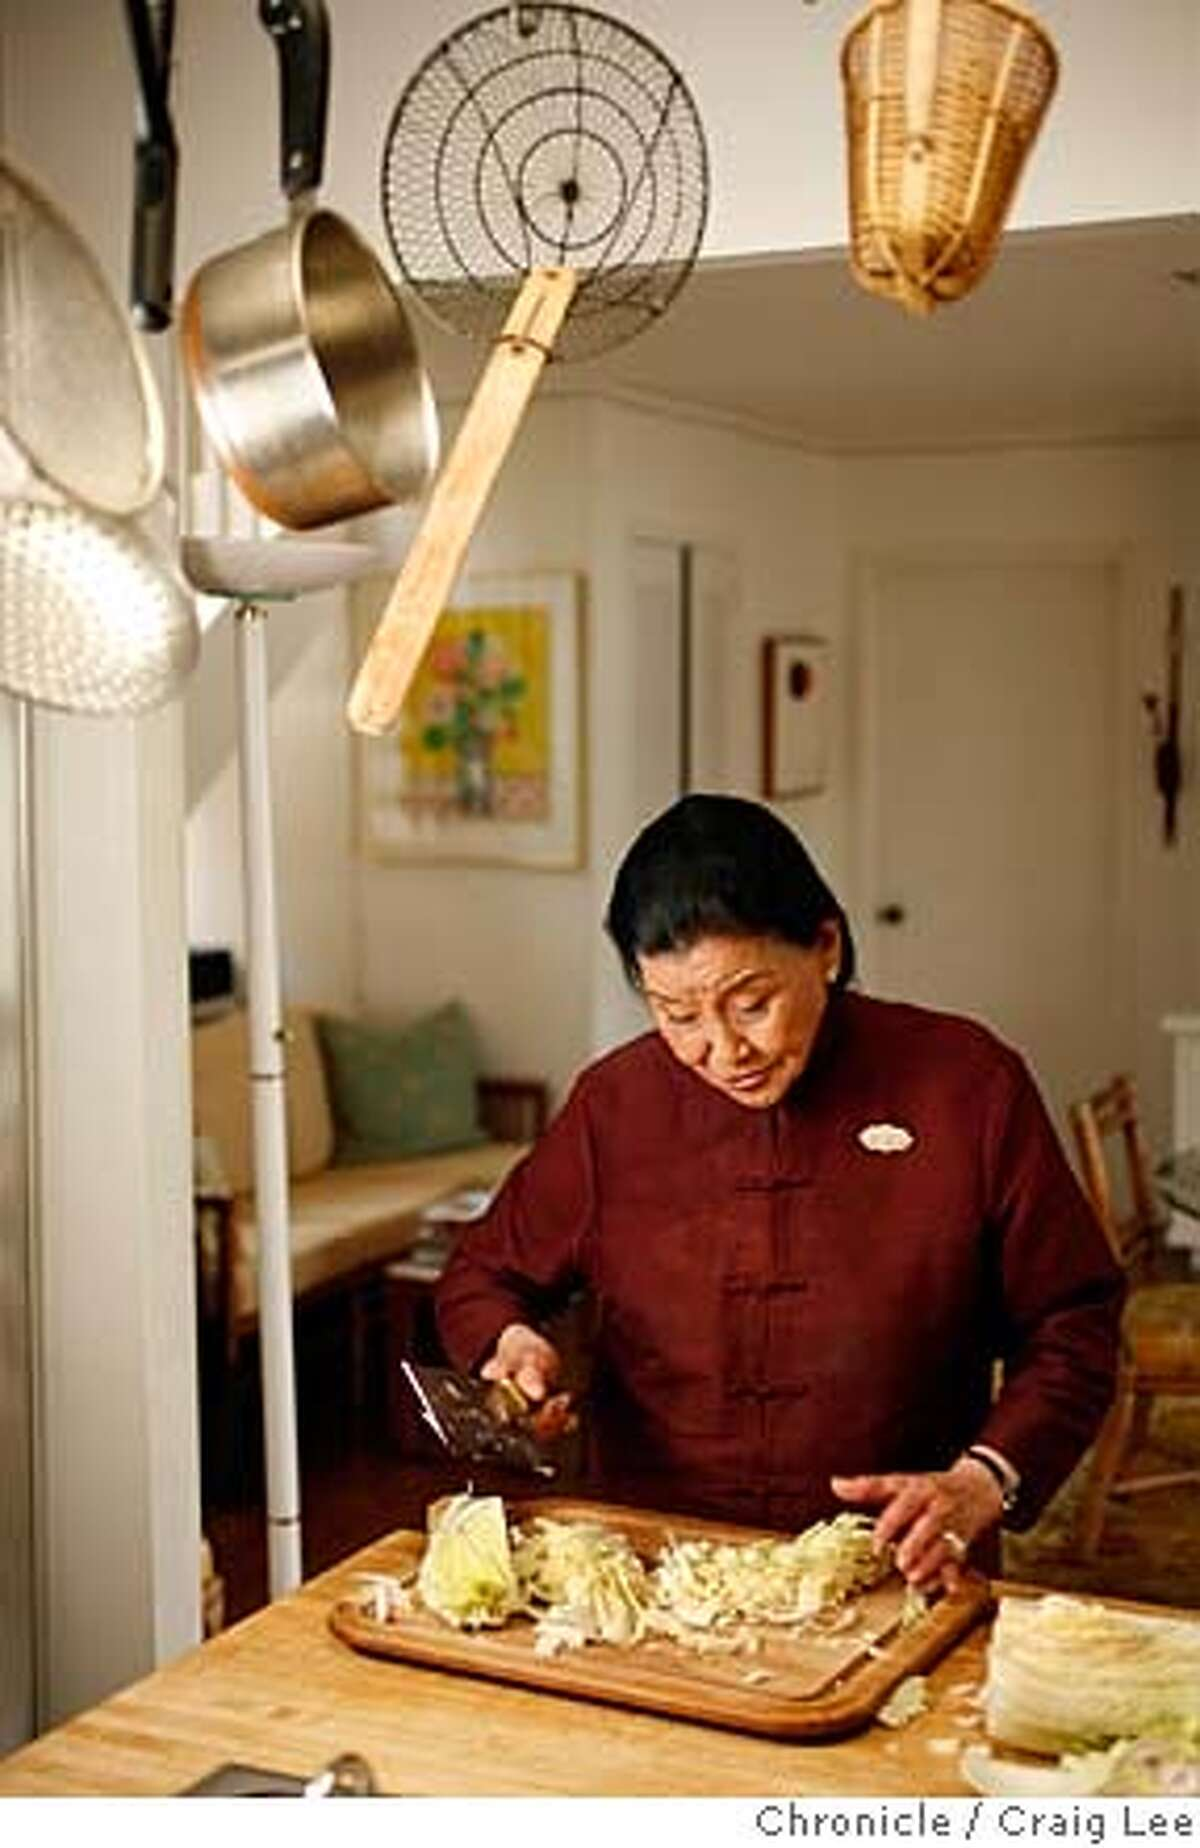 CHIANG31_219_cl.JPG Photo Cecilia Chiang, former owner of the groundbreaking Mandarin restaurant in Ghirardelli Square in the late 1960's. Photo of Cecilia Chiang in her home kitchen demonstrating how she slices cabbage. on 10/9/07 in Belvedere. photo by Craig Lee / The Chronicle MANDATORY CREDIT FOR PHOTOG AND SF CHRONICLE/NO SALES-MAGS OUT